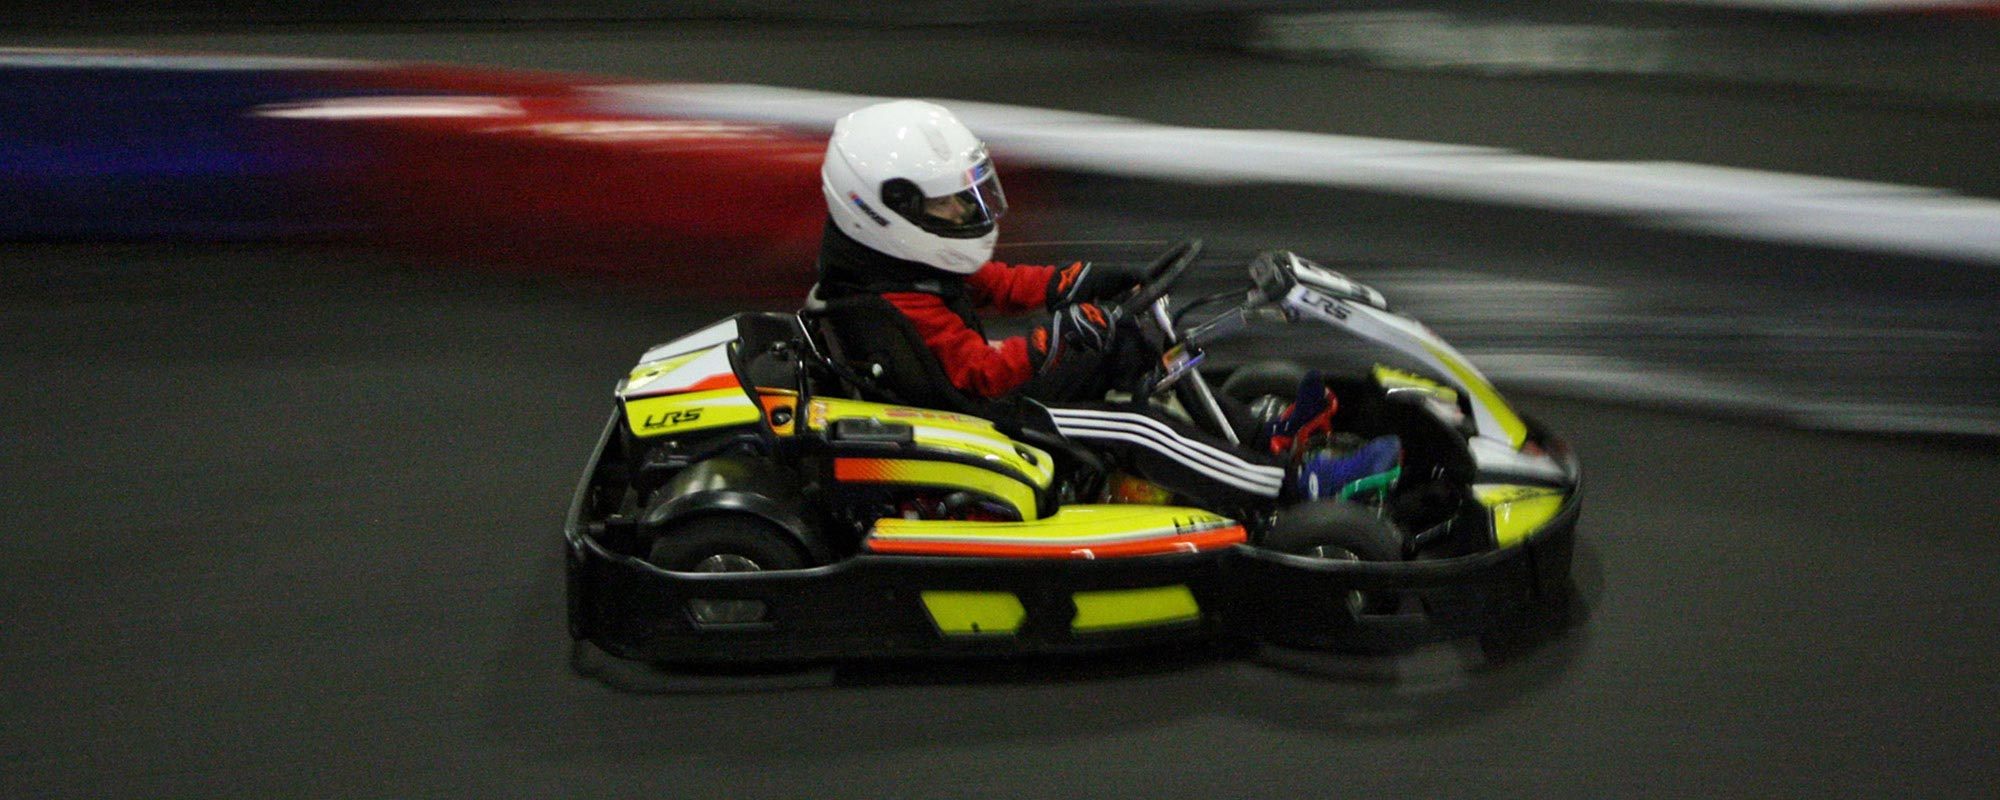 ebafkc-juniorkarting-2000x800-07